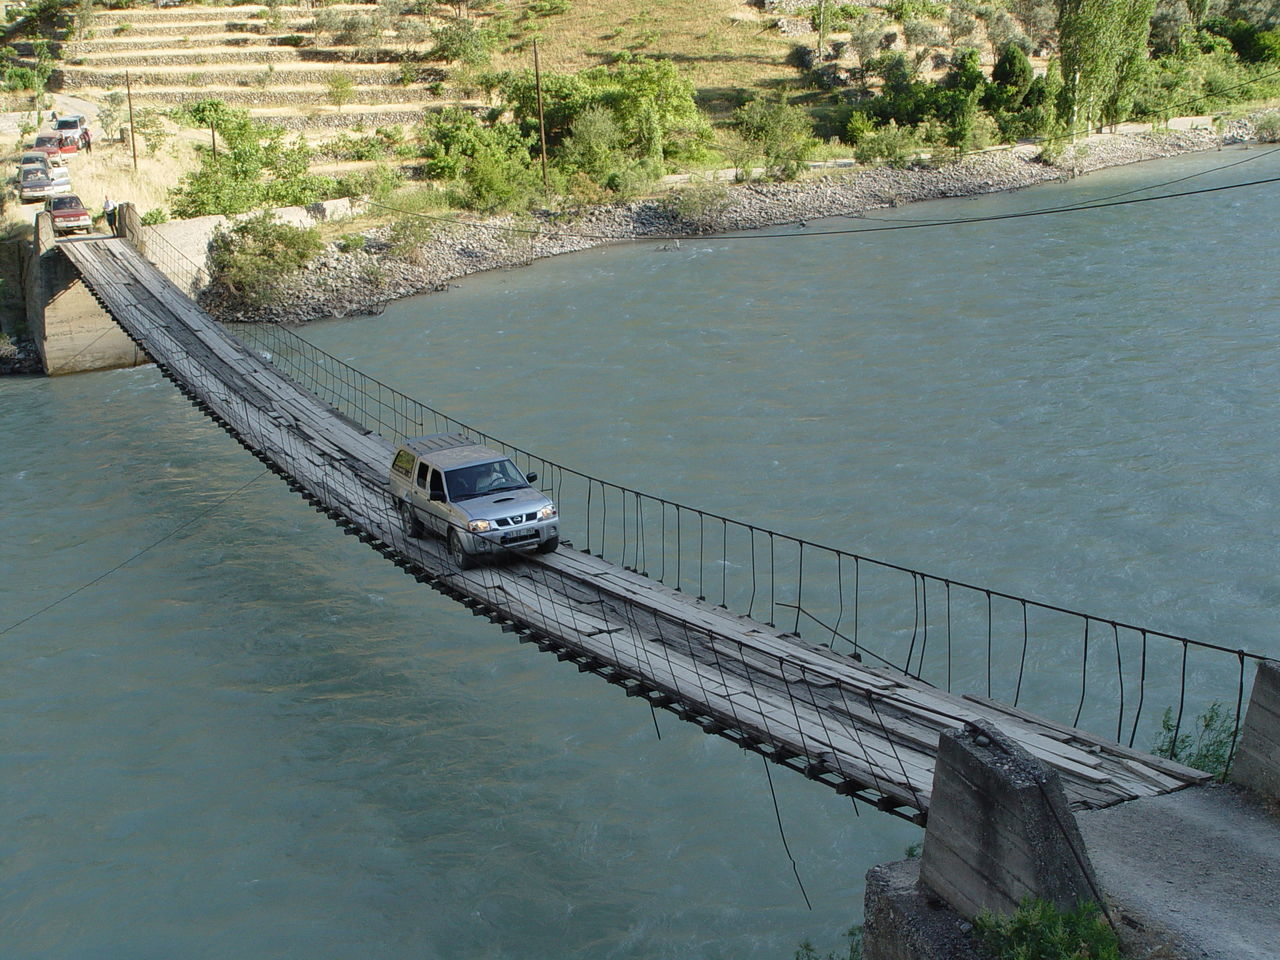 HIGH ANGLE VIEW OF RIVER BY BRIDGE